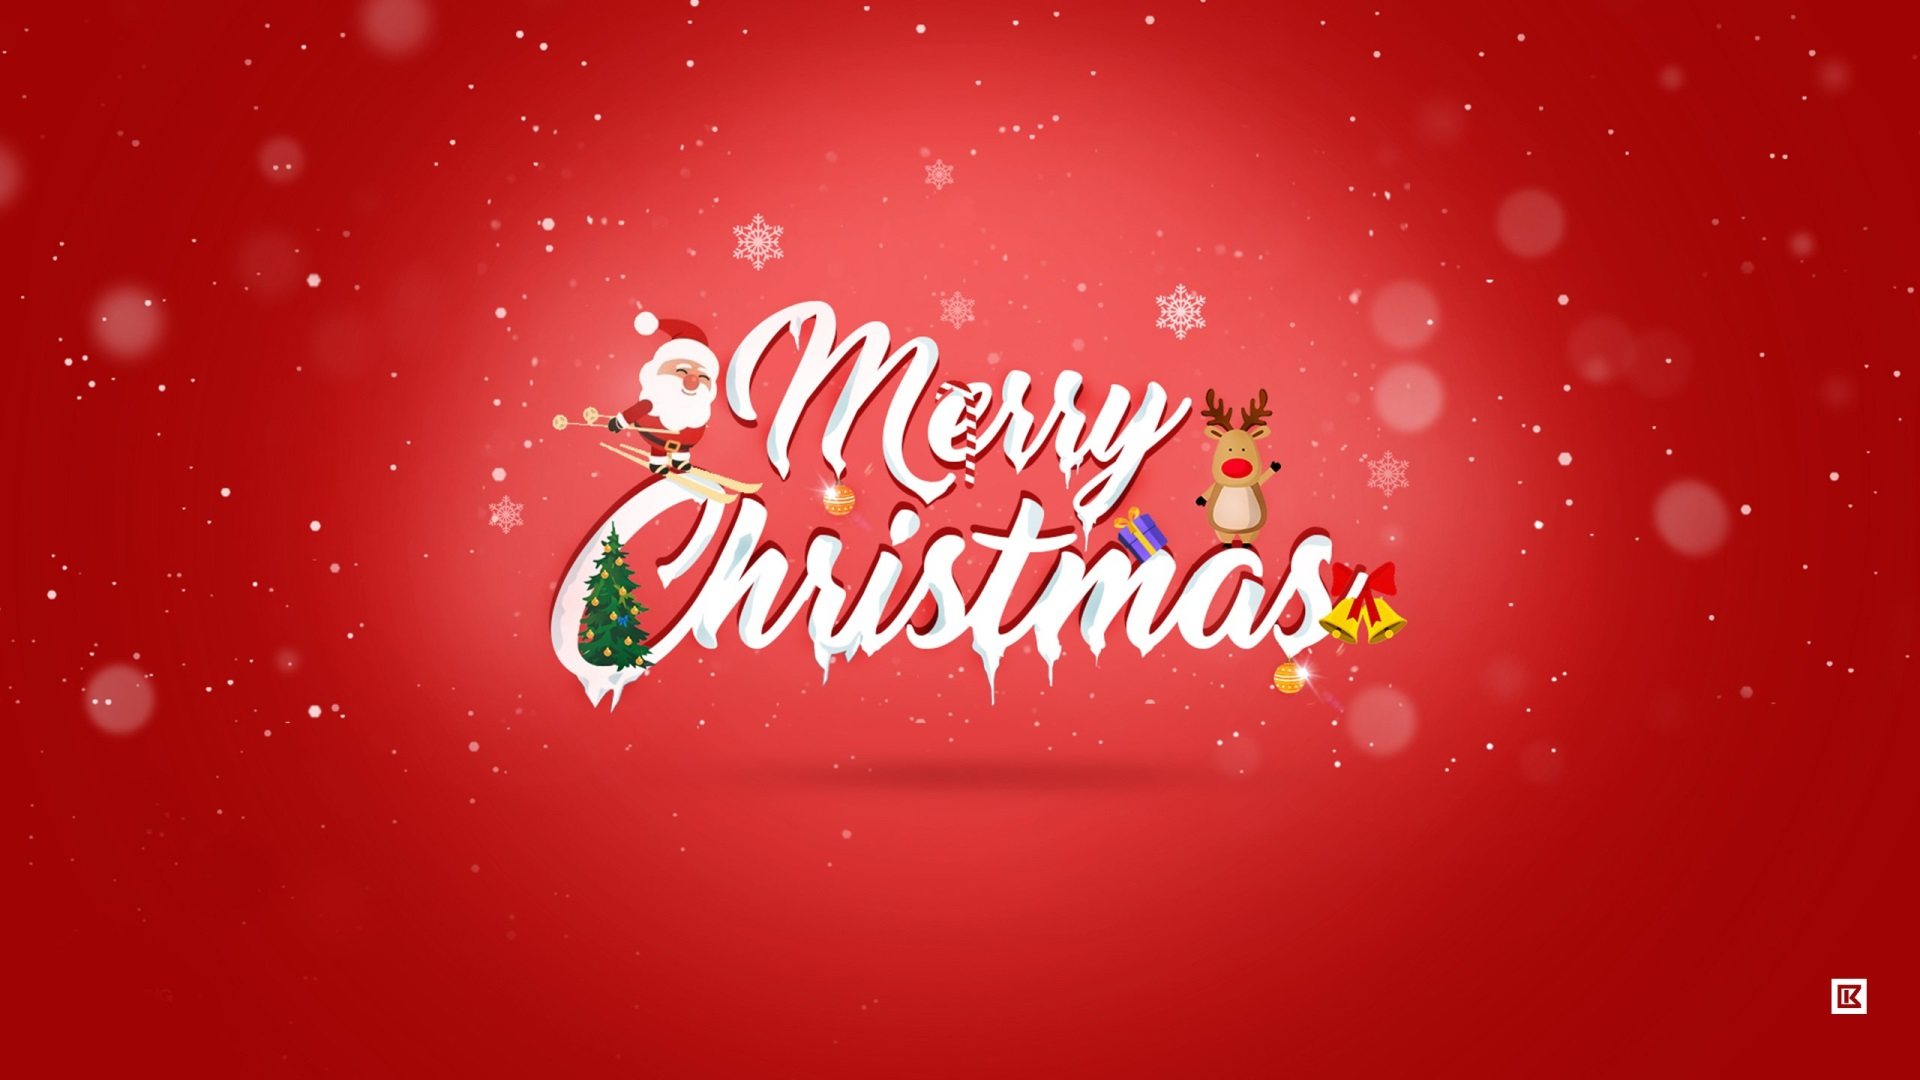 Download Christmas Computer Wallpaper Hd Backgrounds